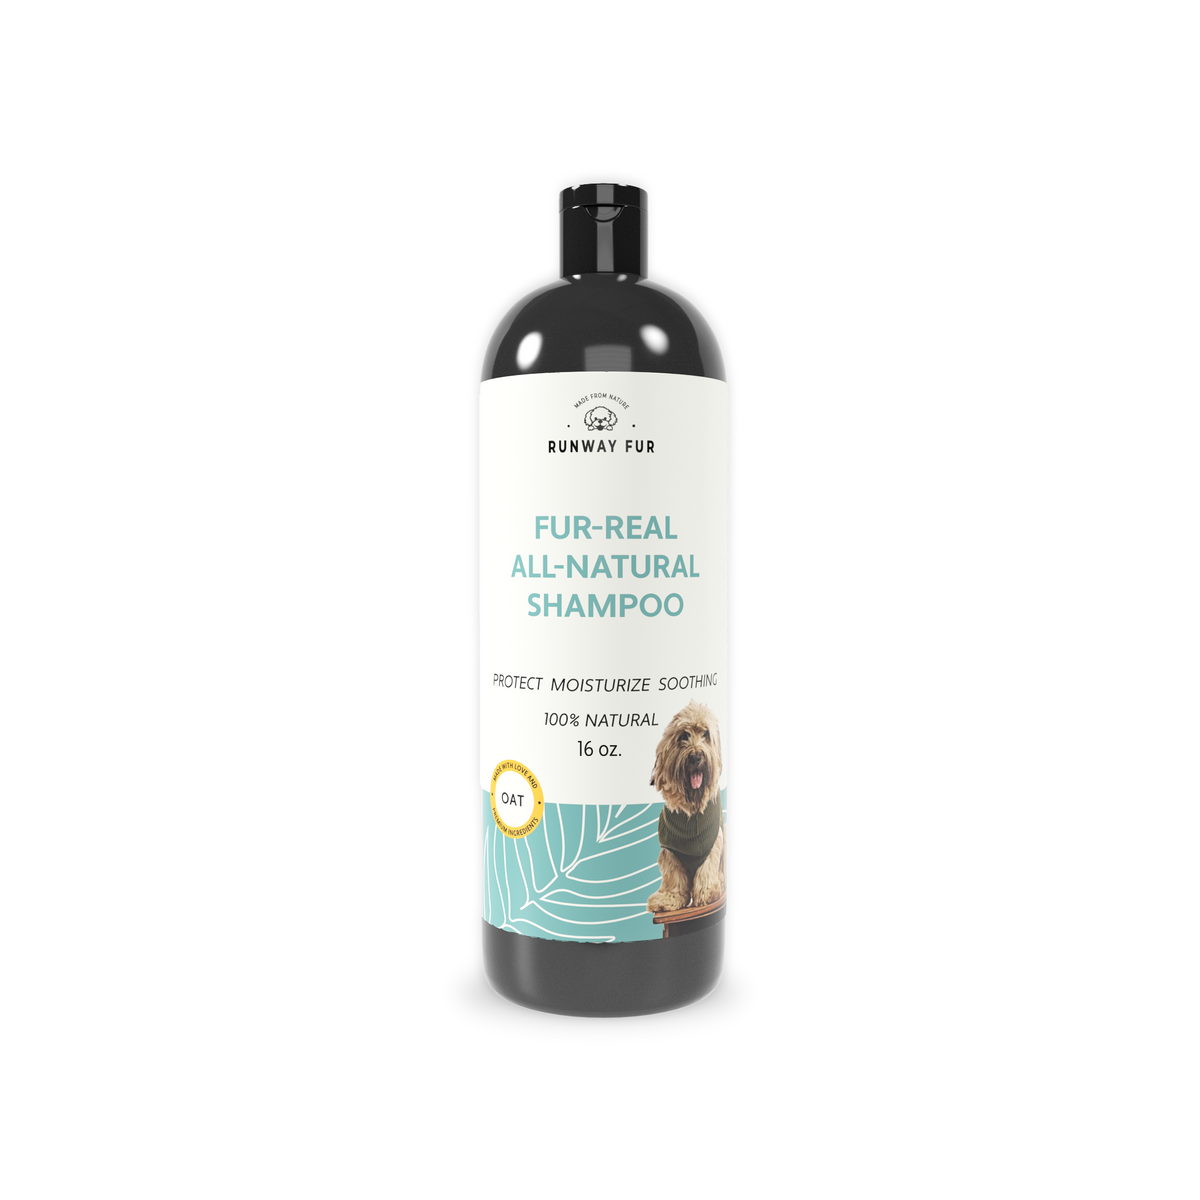 Fur-Real All-Natural OAT Dog Shampoo